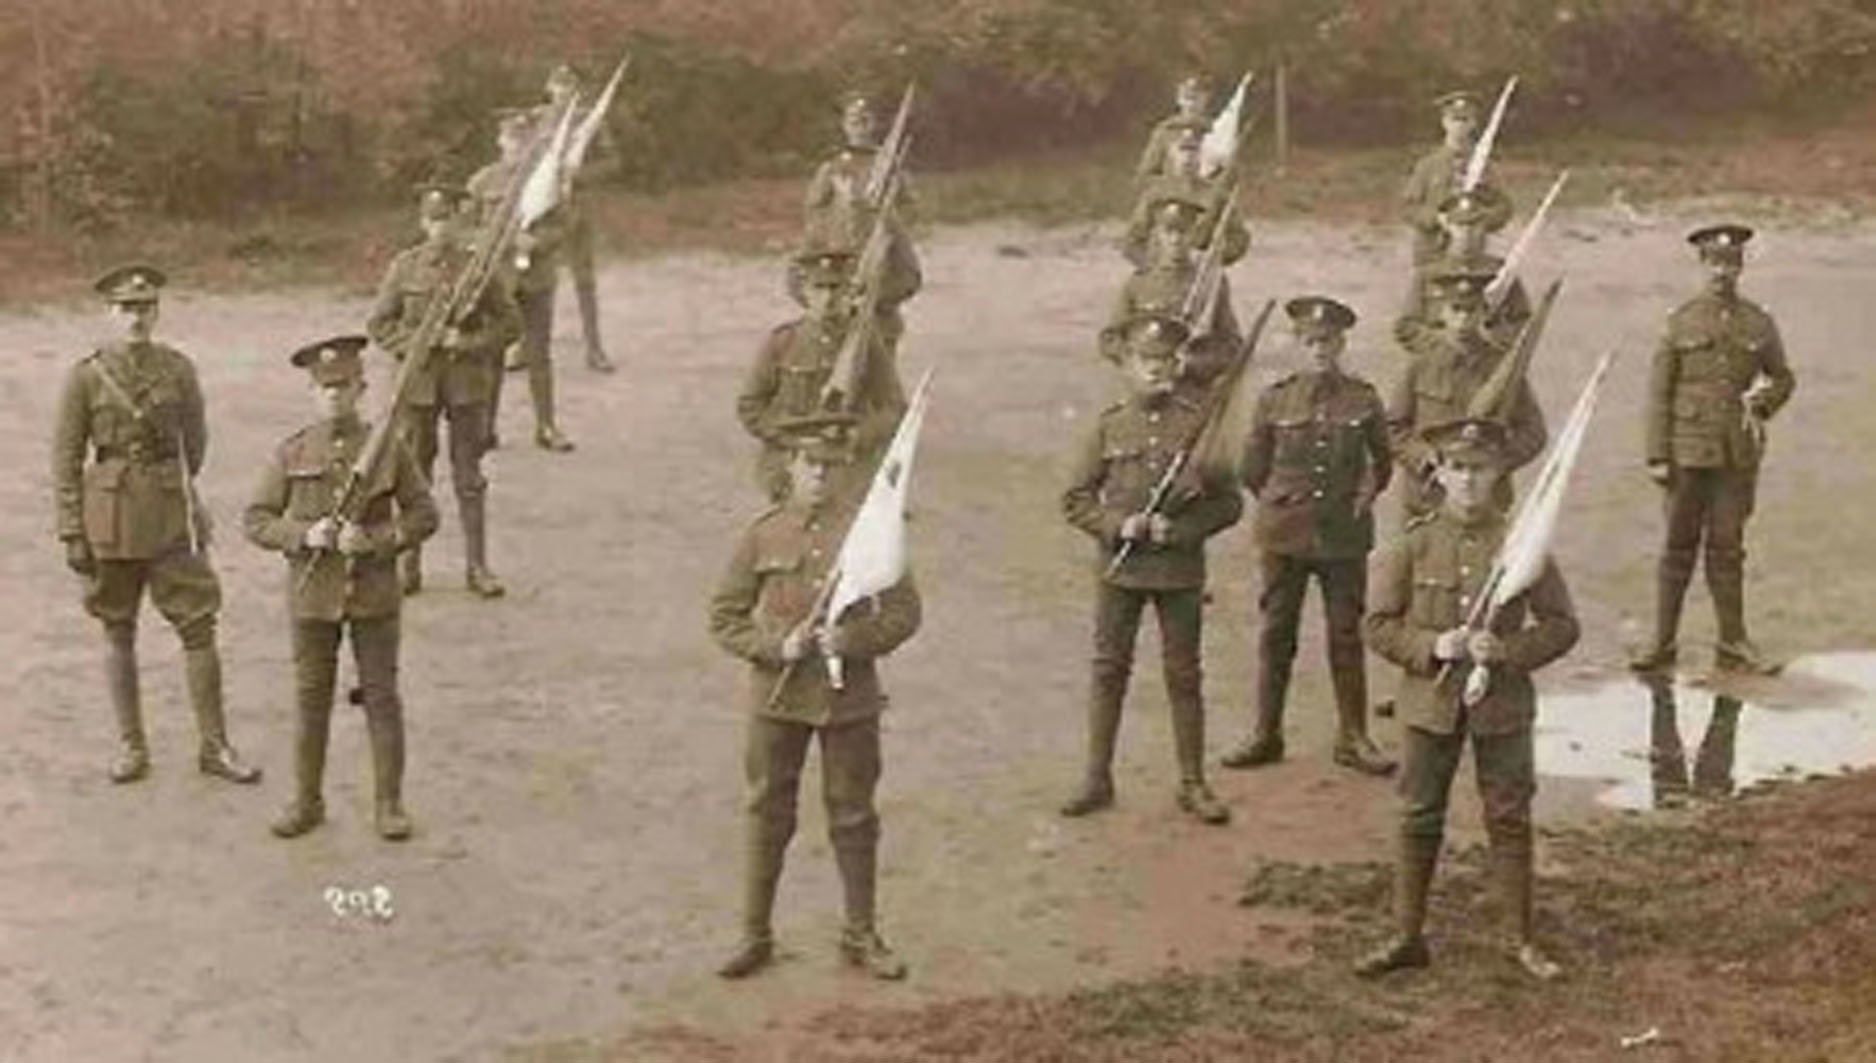 WW1 & WW2 communications Visual signalling using flags during WW1